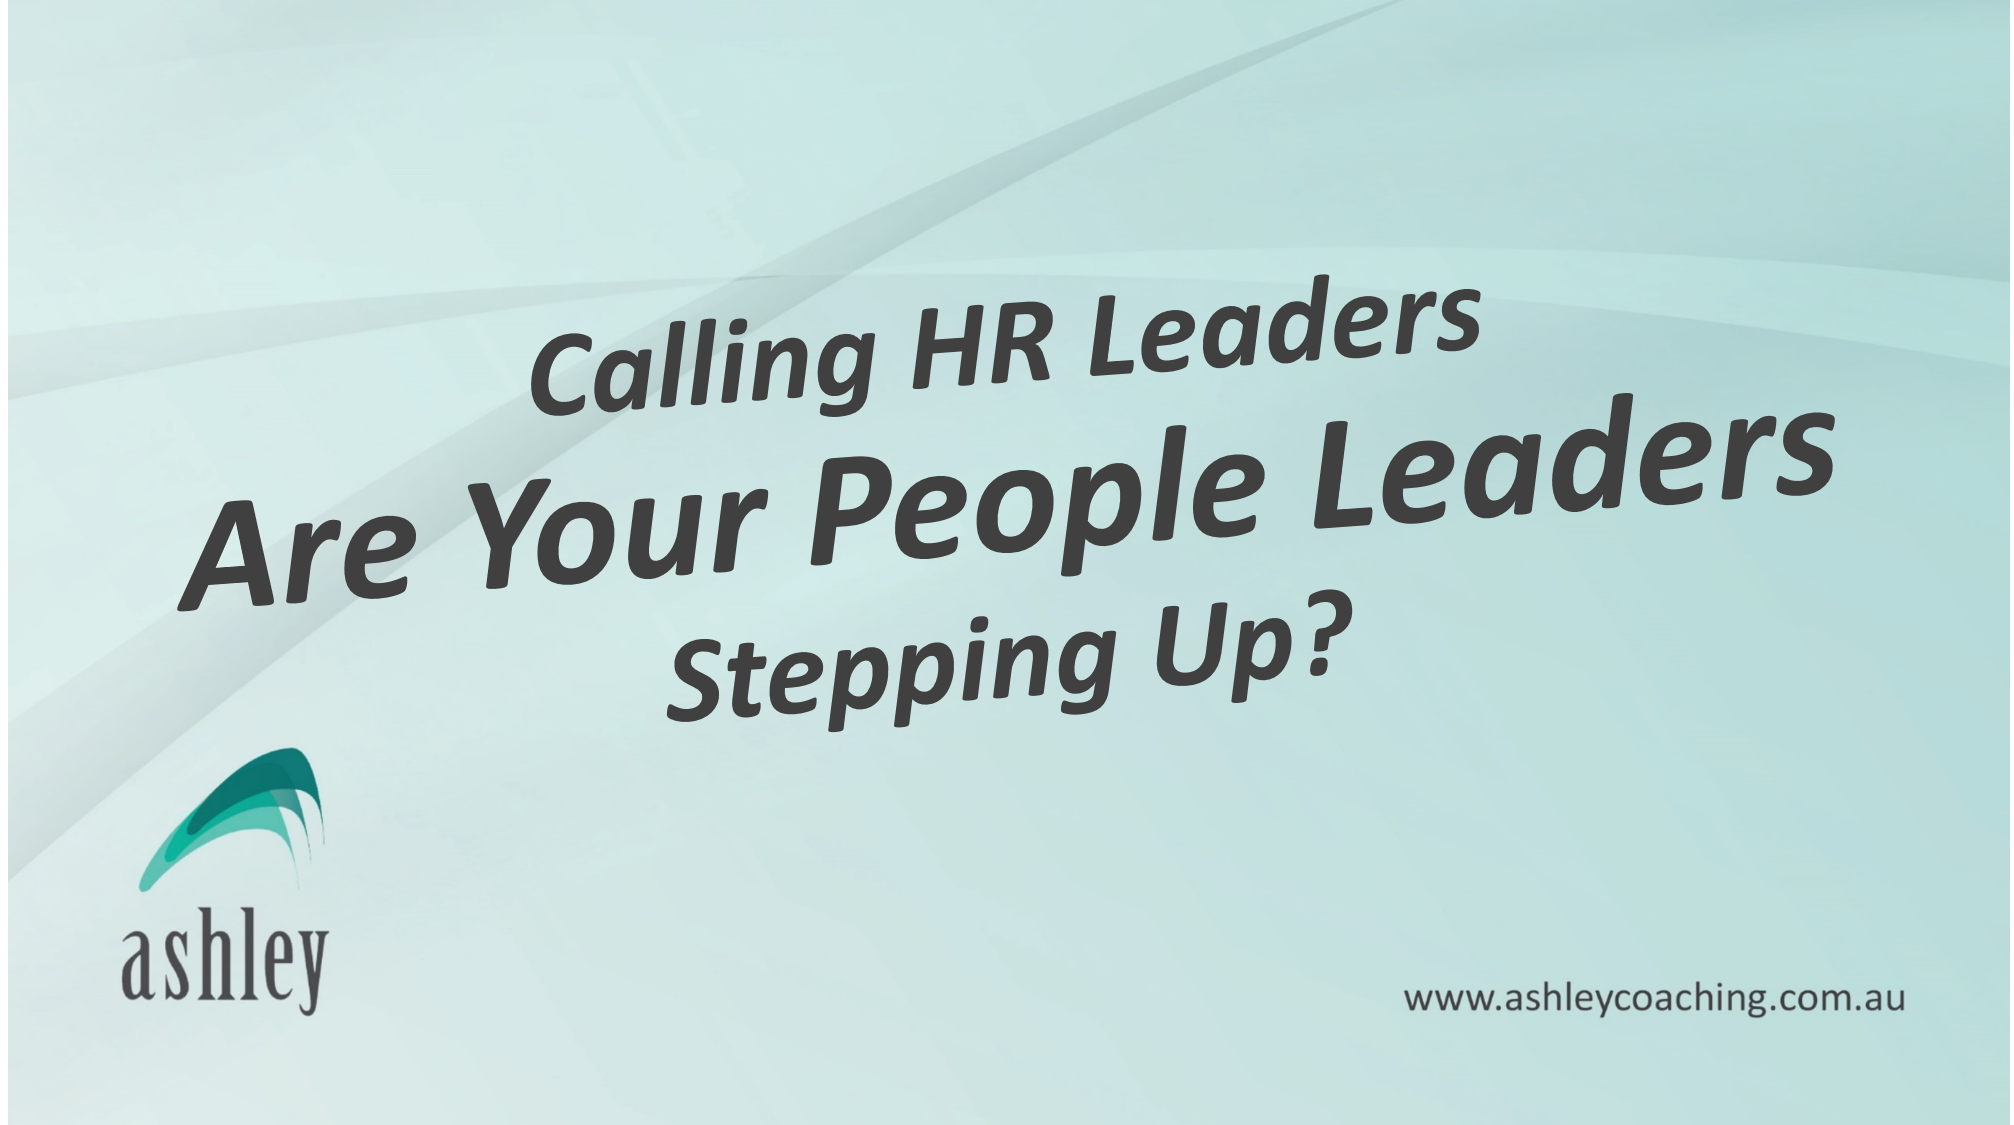 Calling HR Leaders, Are Your People Leaders Stepping Up?